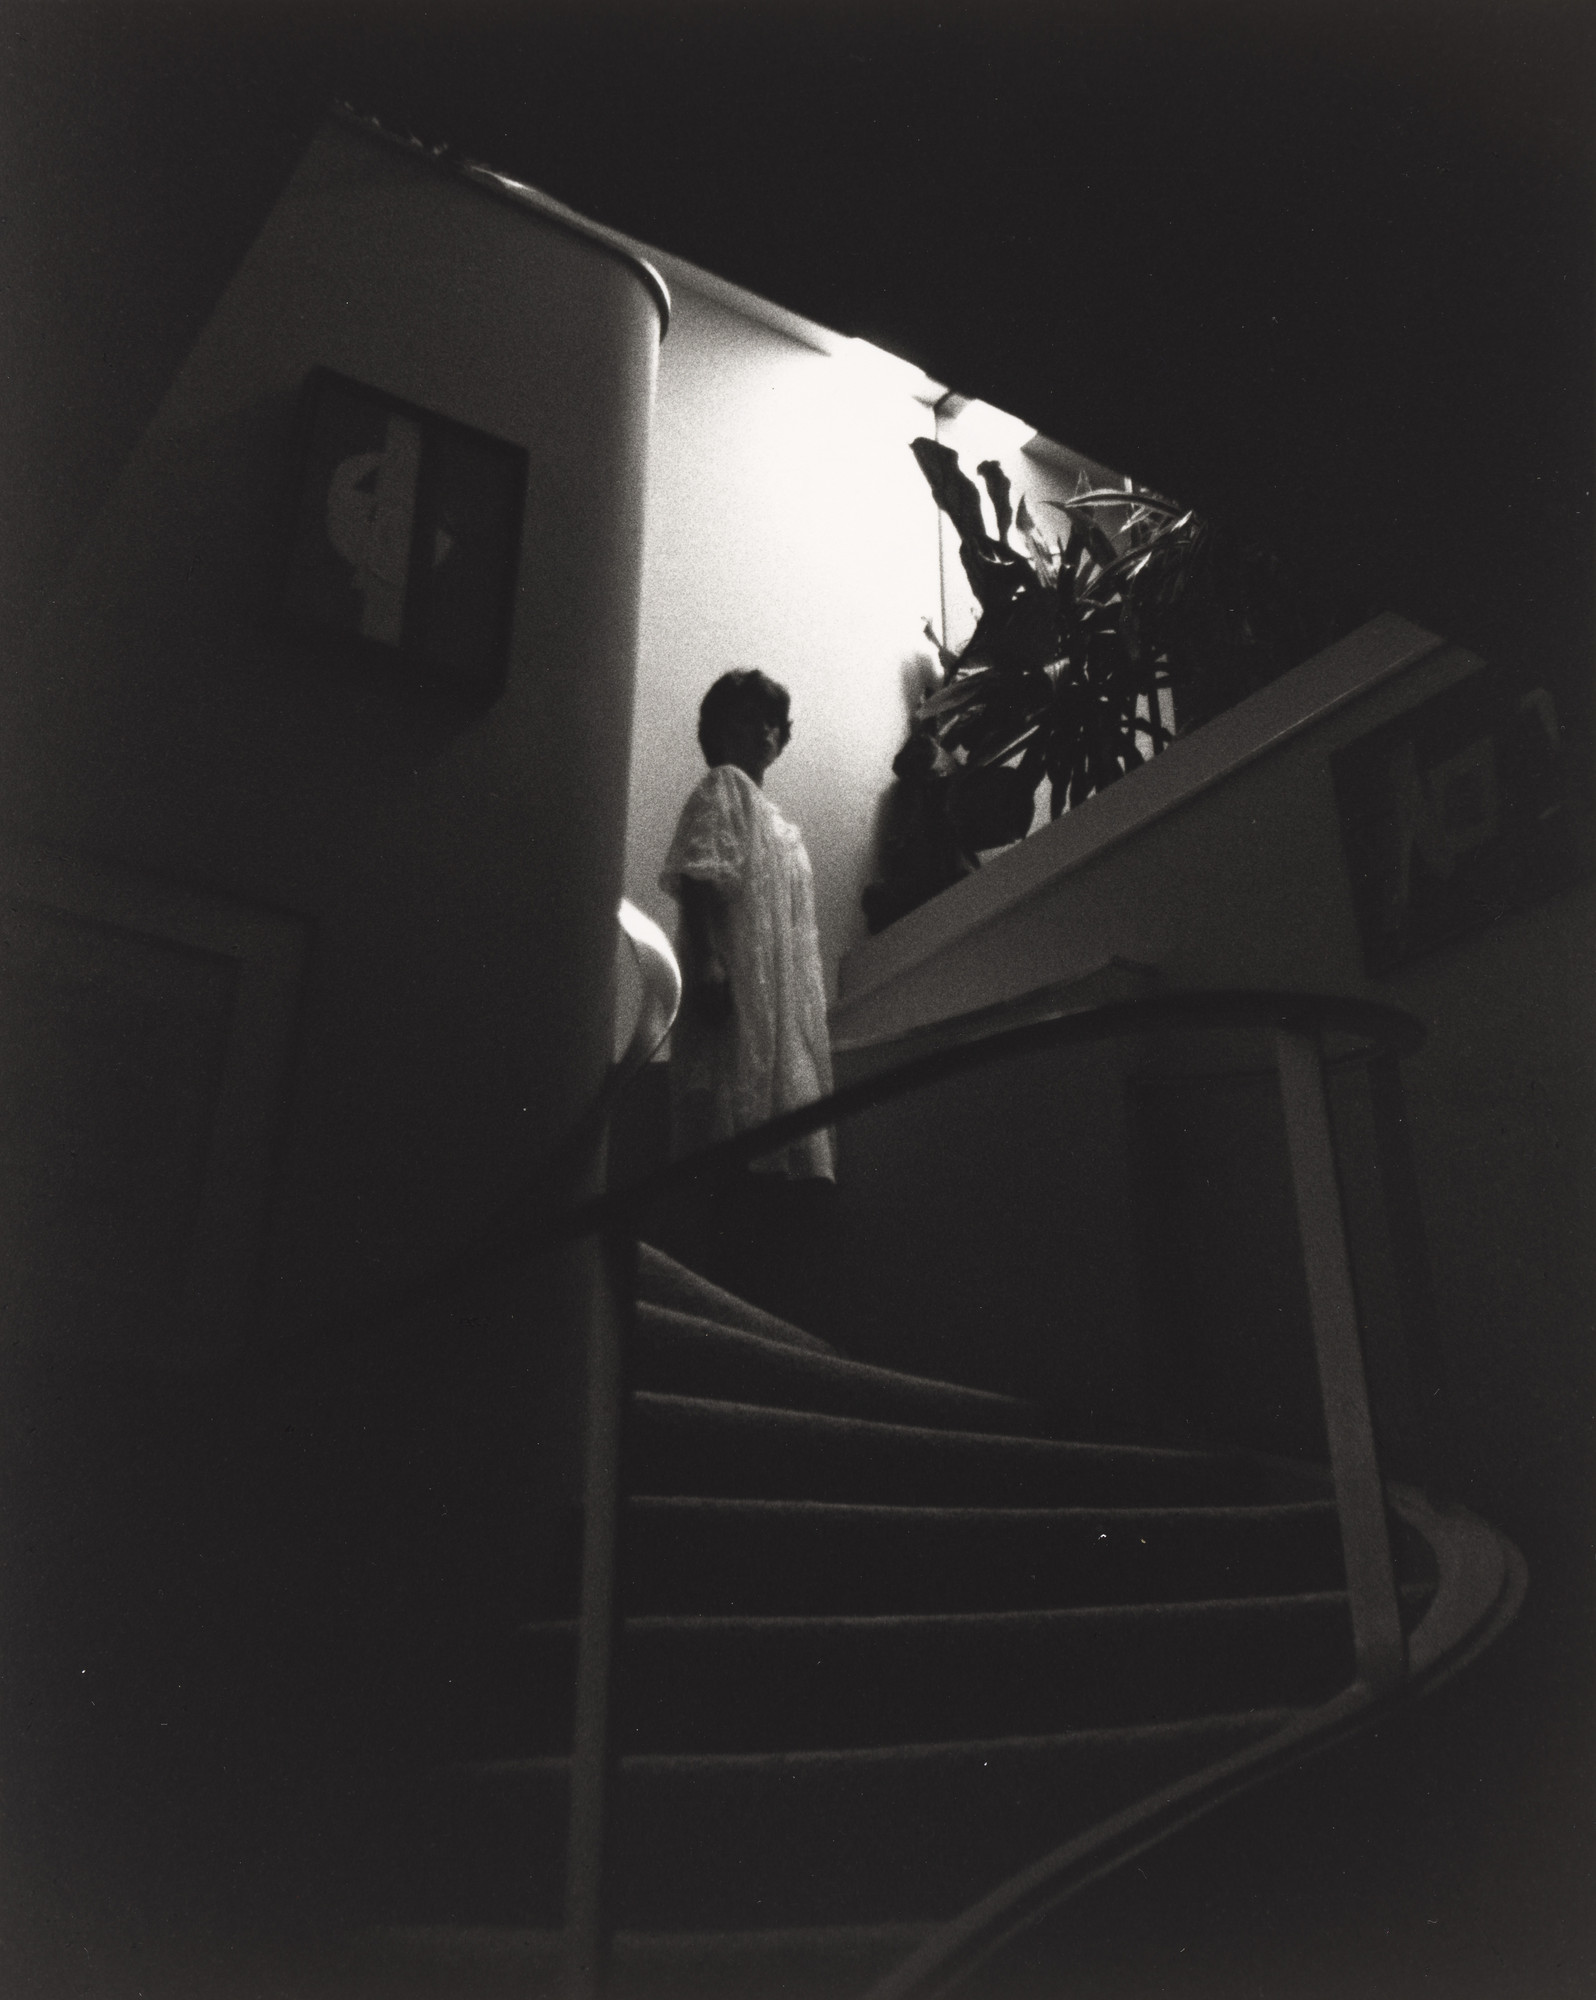 Cindy Sherman. Untitled Film Still #51. 1979